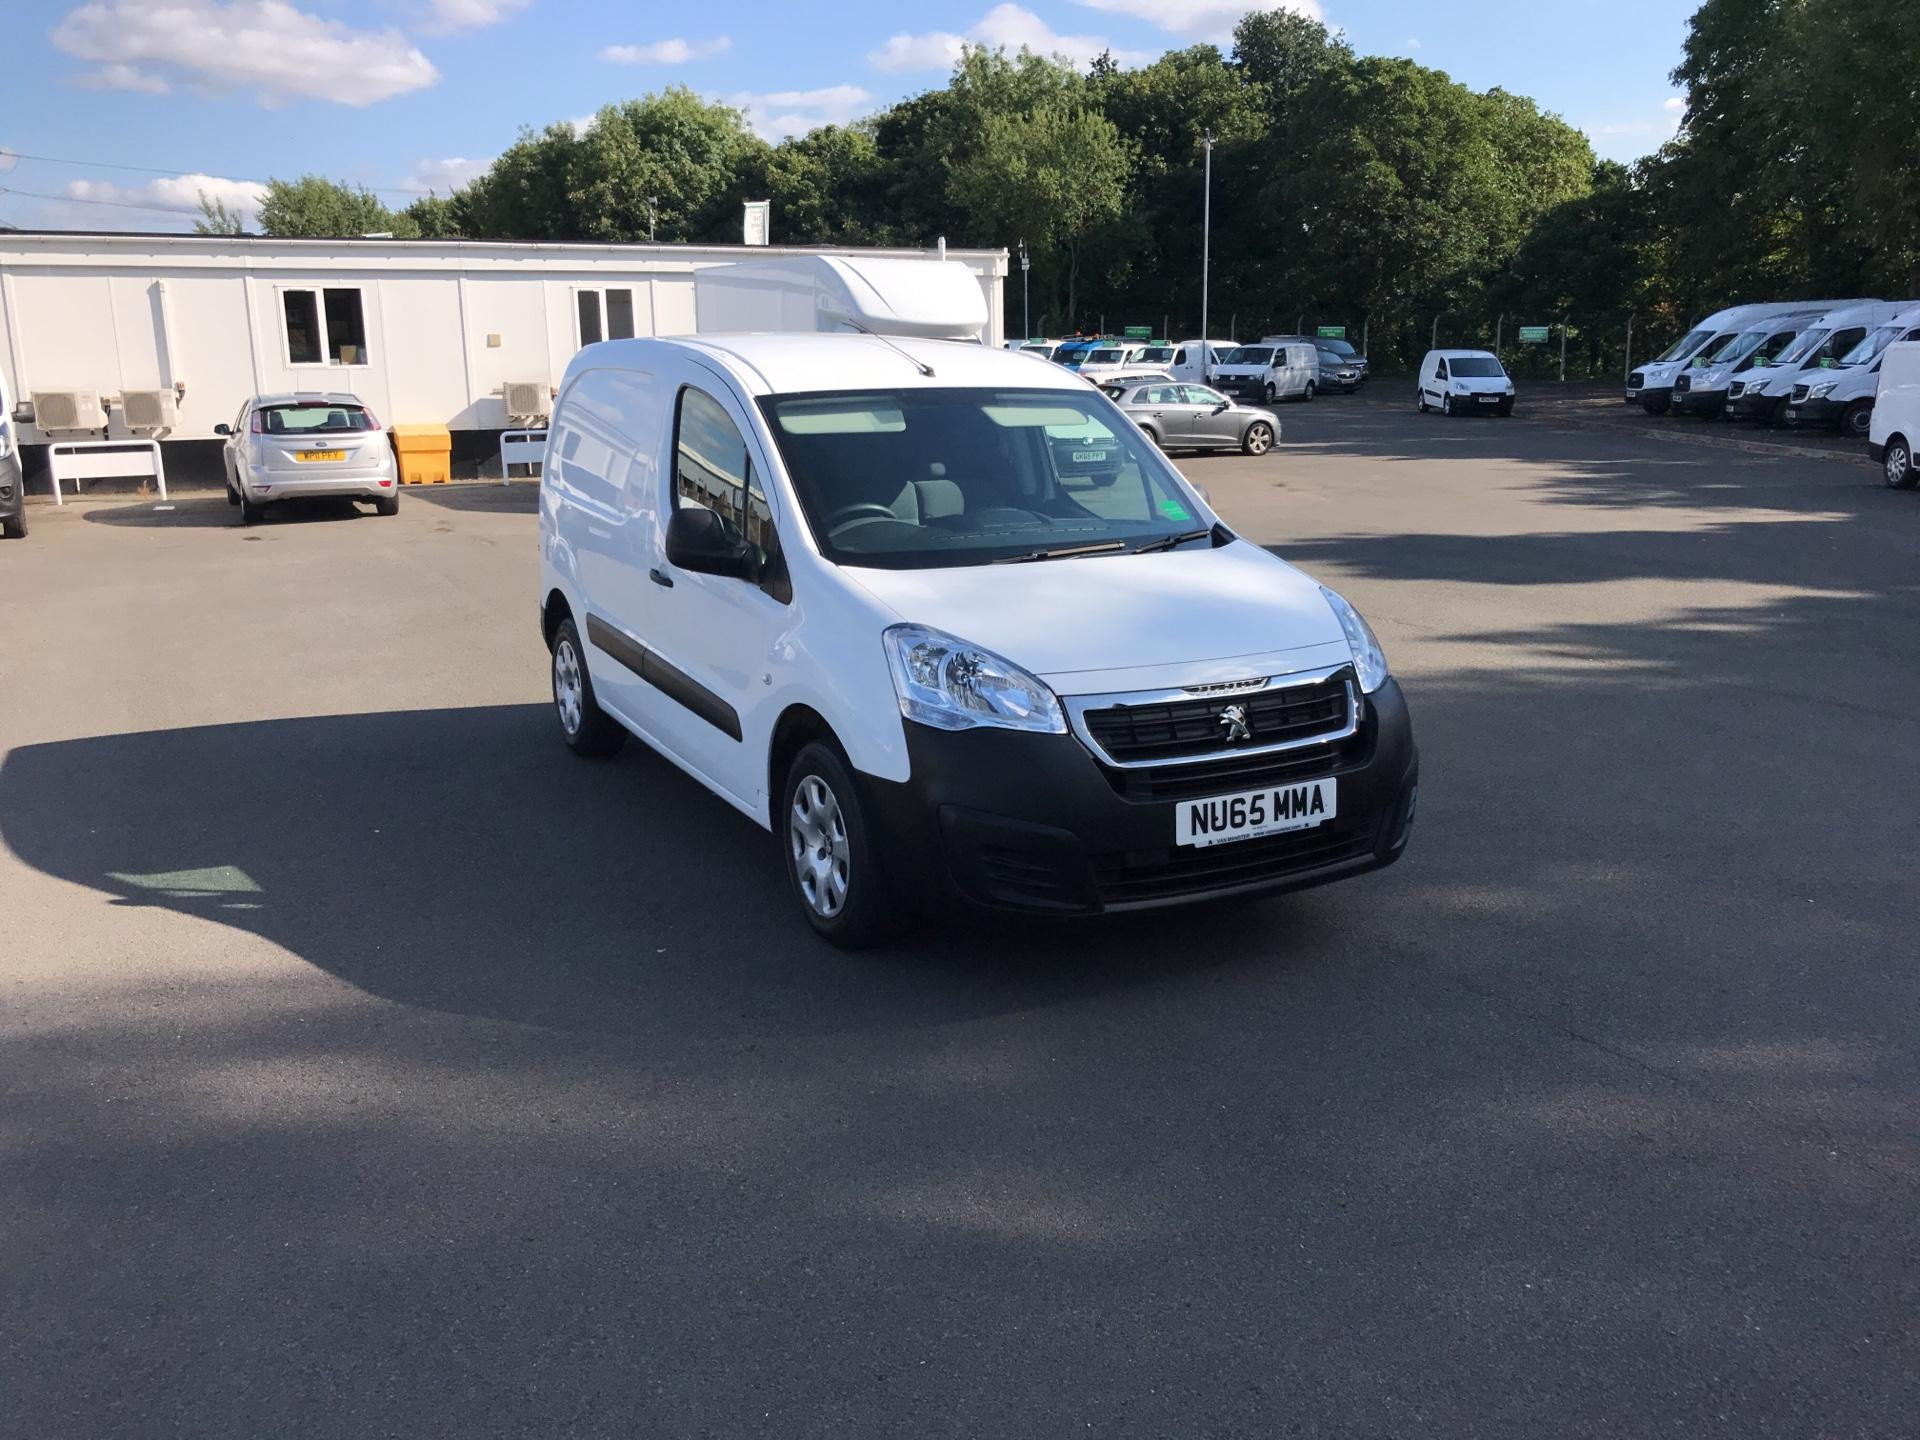 2015 Peugeot Partner  L1 850 SE 1.6 92PS EURO 5 *VALUE RANGE VEHICLE - CONDITION REFLECTED IN PRICE* (NU65MMA)